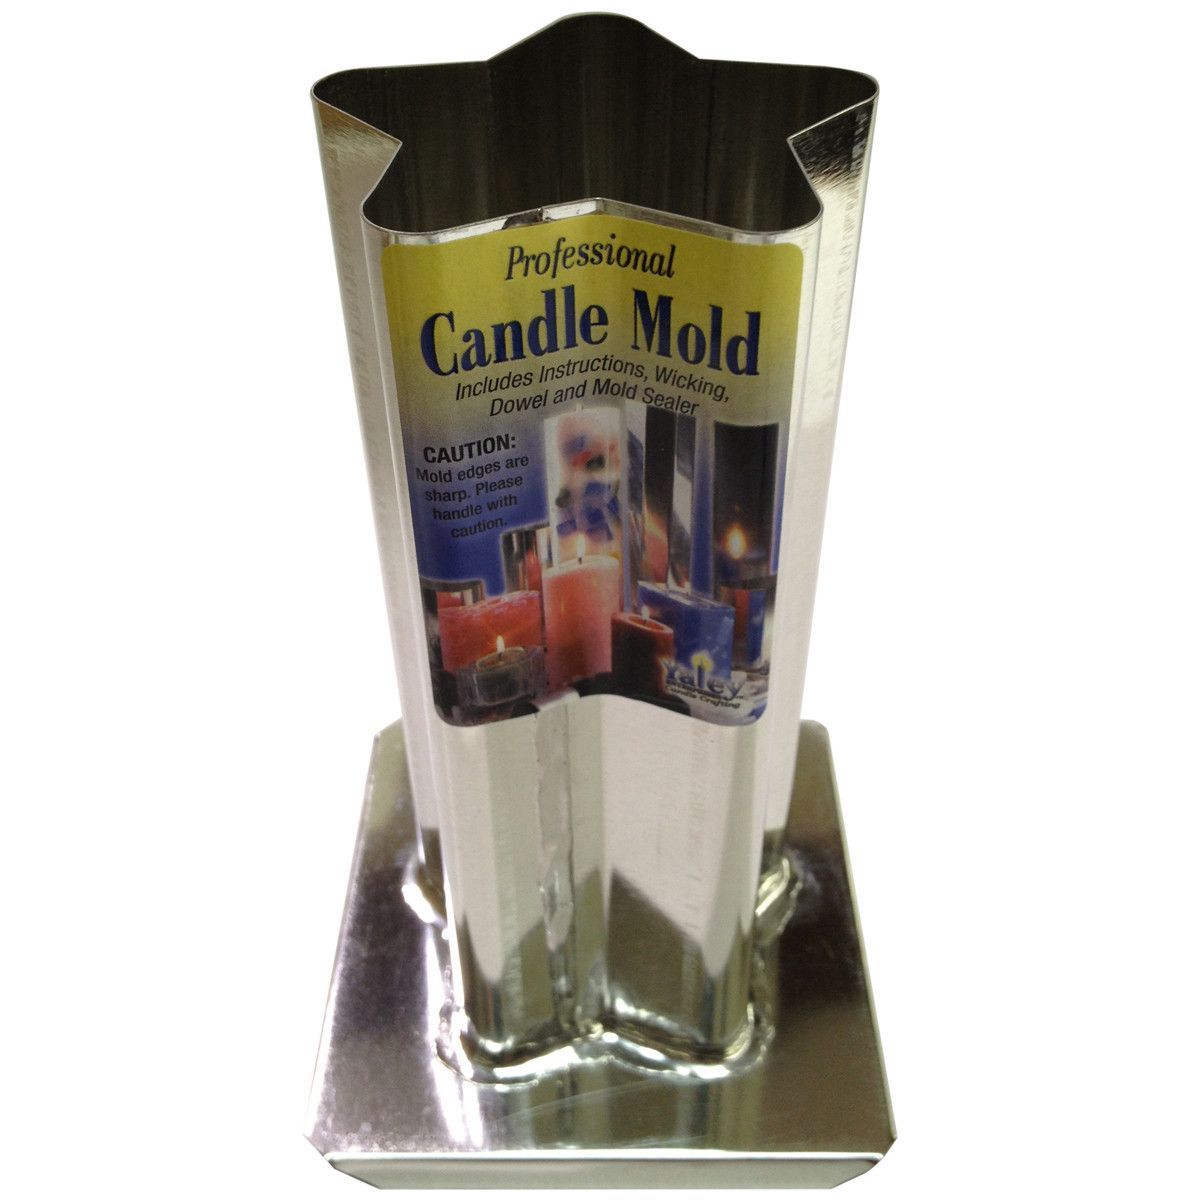 Professional metal candle moldpoint rounded star